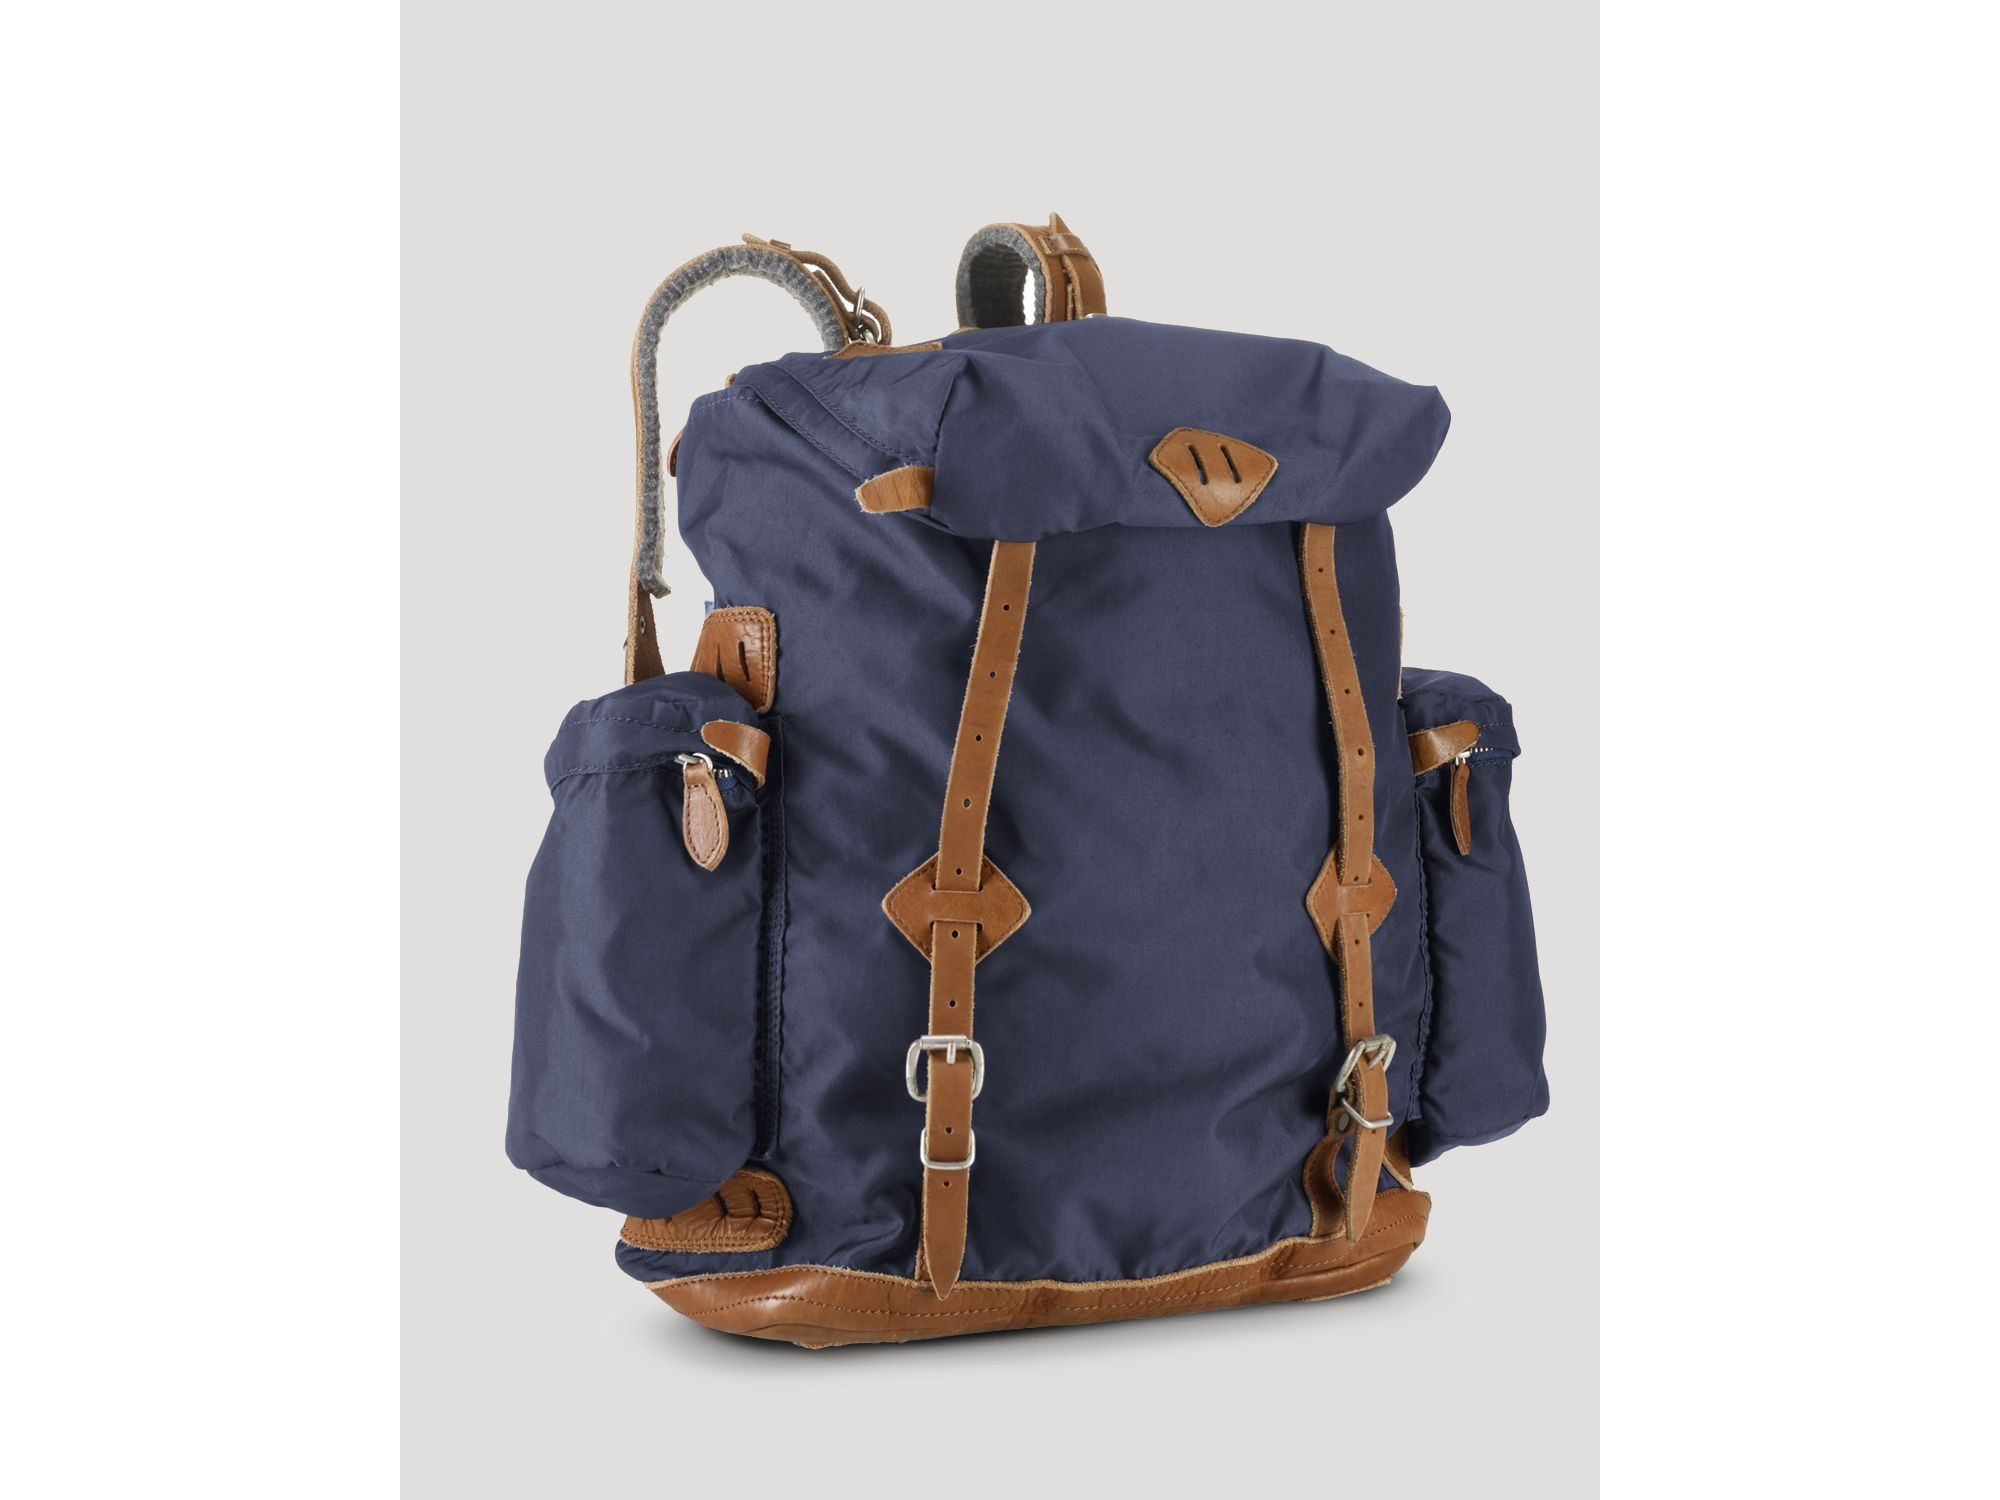 Lyst ralph lauren polo yosemite canvas backpack in blue for men jpg  2000x1500 Polo canvas backpack 0c459cecd4c1b